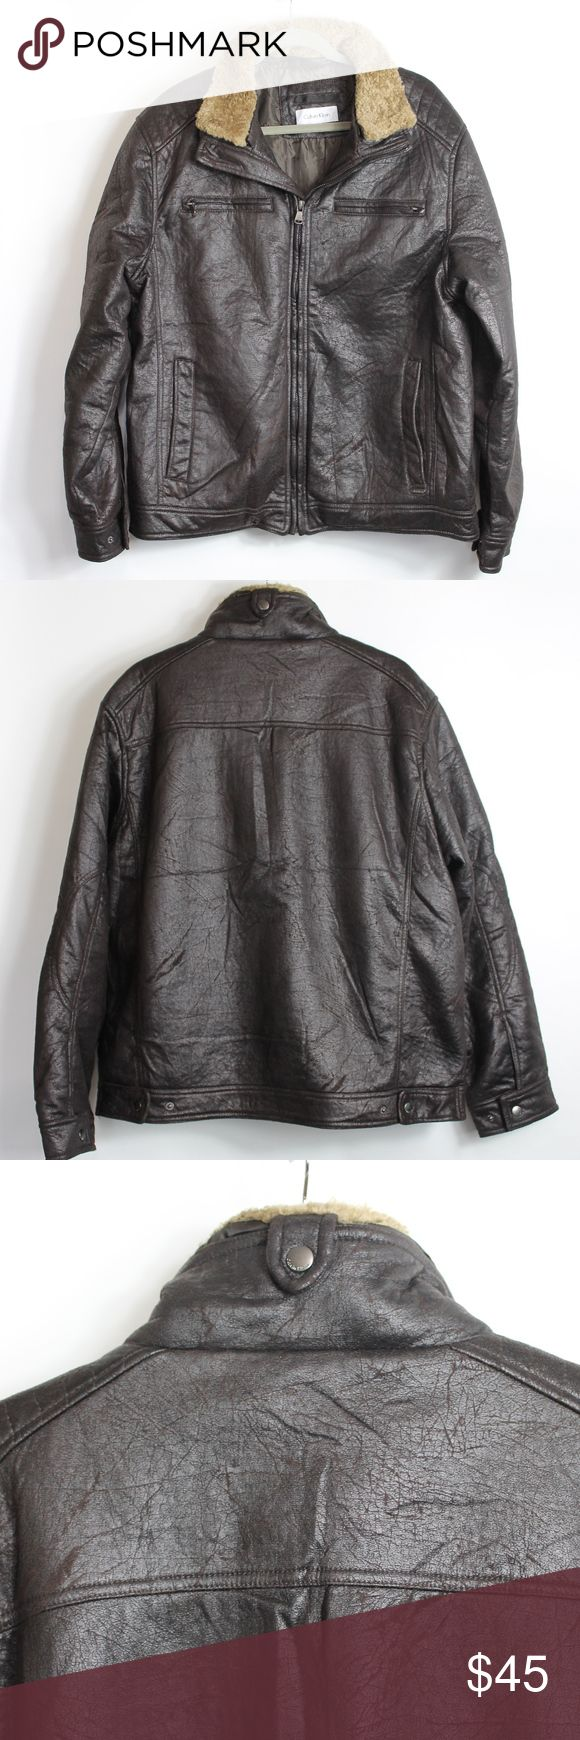 """Calvin Klein Aviator Bomber Jacket Calvin Klein Aviator Bomber Jacket  This jacket is in good used condition. There are no flaws.  Measurements are approximate:  Shoulder to Shoulder 20"""" Armpit to Armpit 24"""" Sleeve 25"""" Length from Collar 29""""  Material - 100% Polyester Calvin Klein Jackets & Coats"""